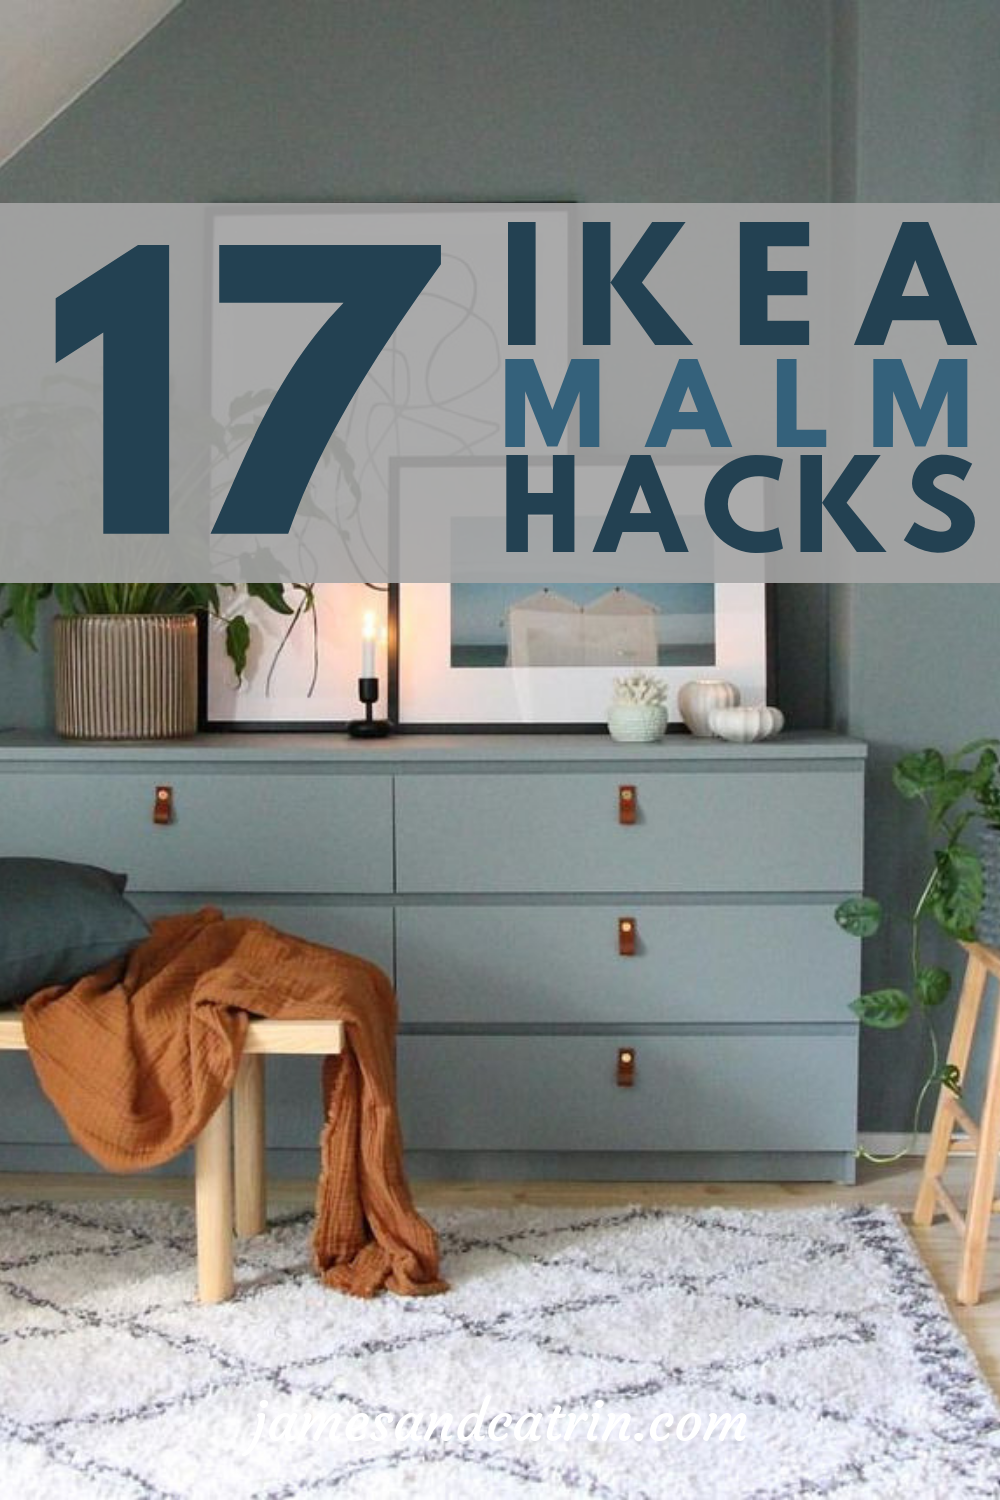 17 Awesome Ikea Malm Hacks that will Make your Day – james and catrin